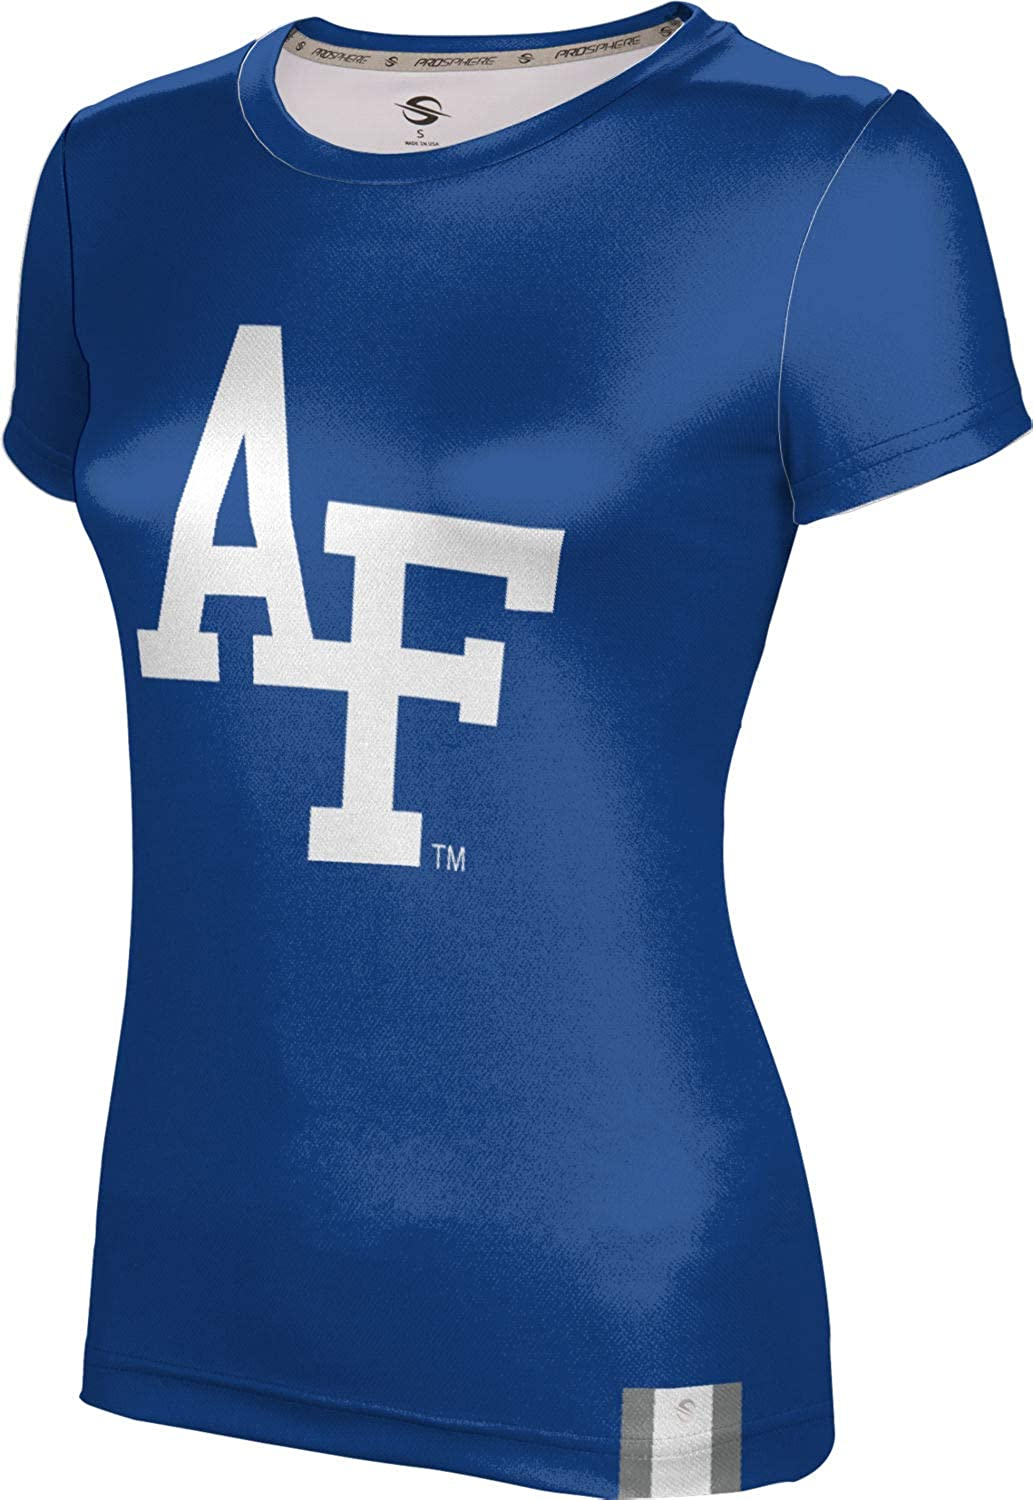 ProSphere U.S. Air Force Academy Girls' Performance T-Shirt (Solid)